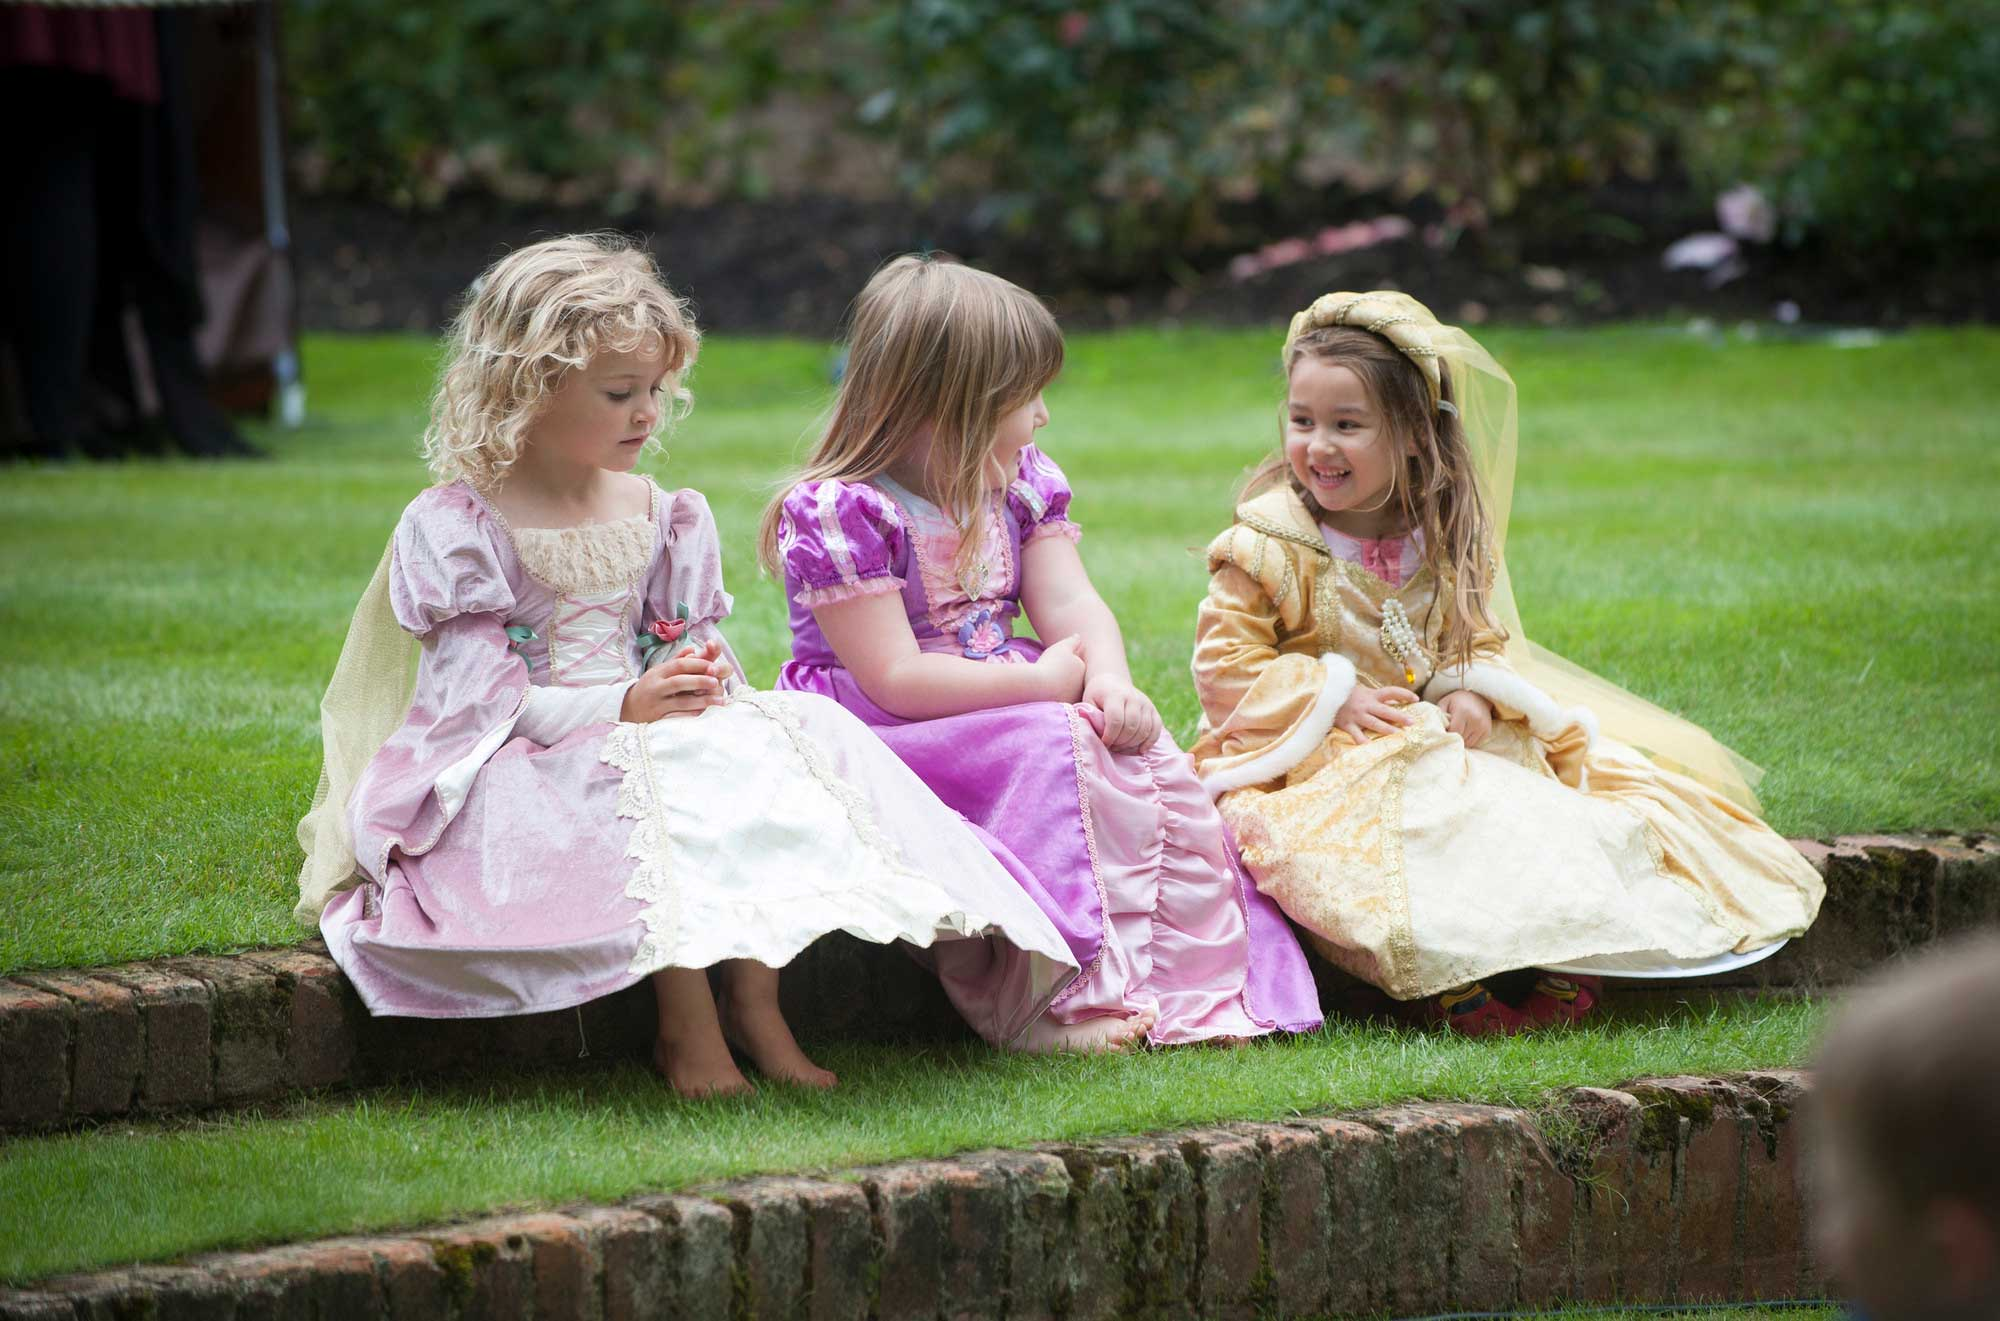 Dressing up like royalty can make the kids feel like a prince or princess for the day.